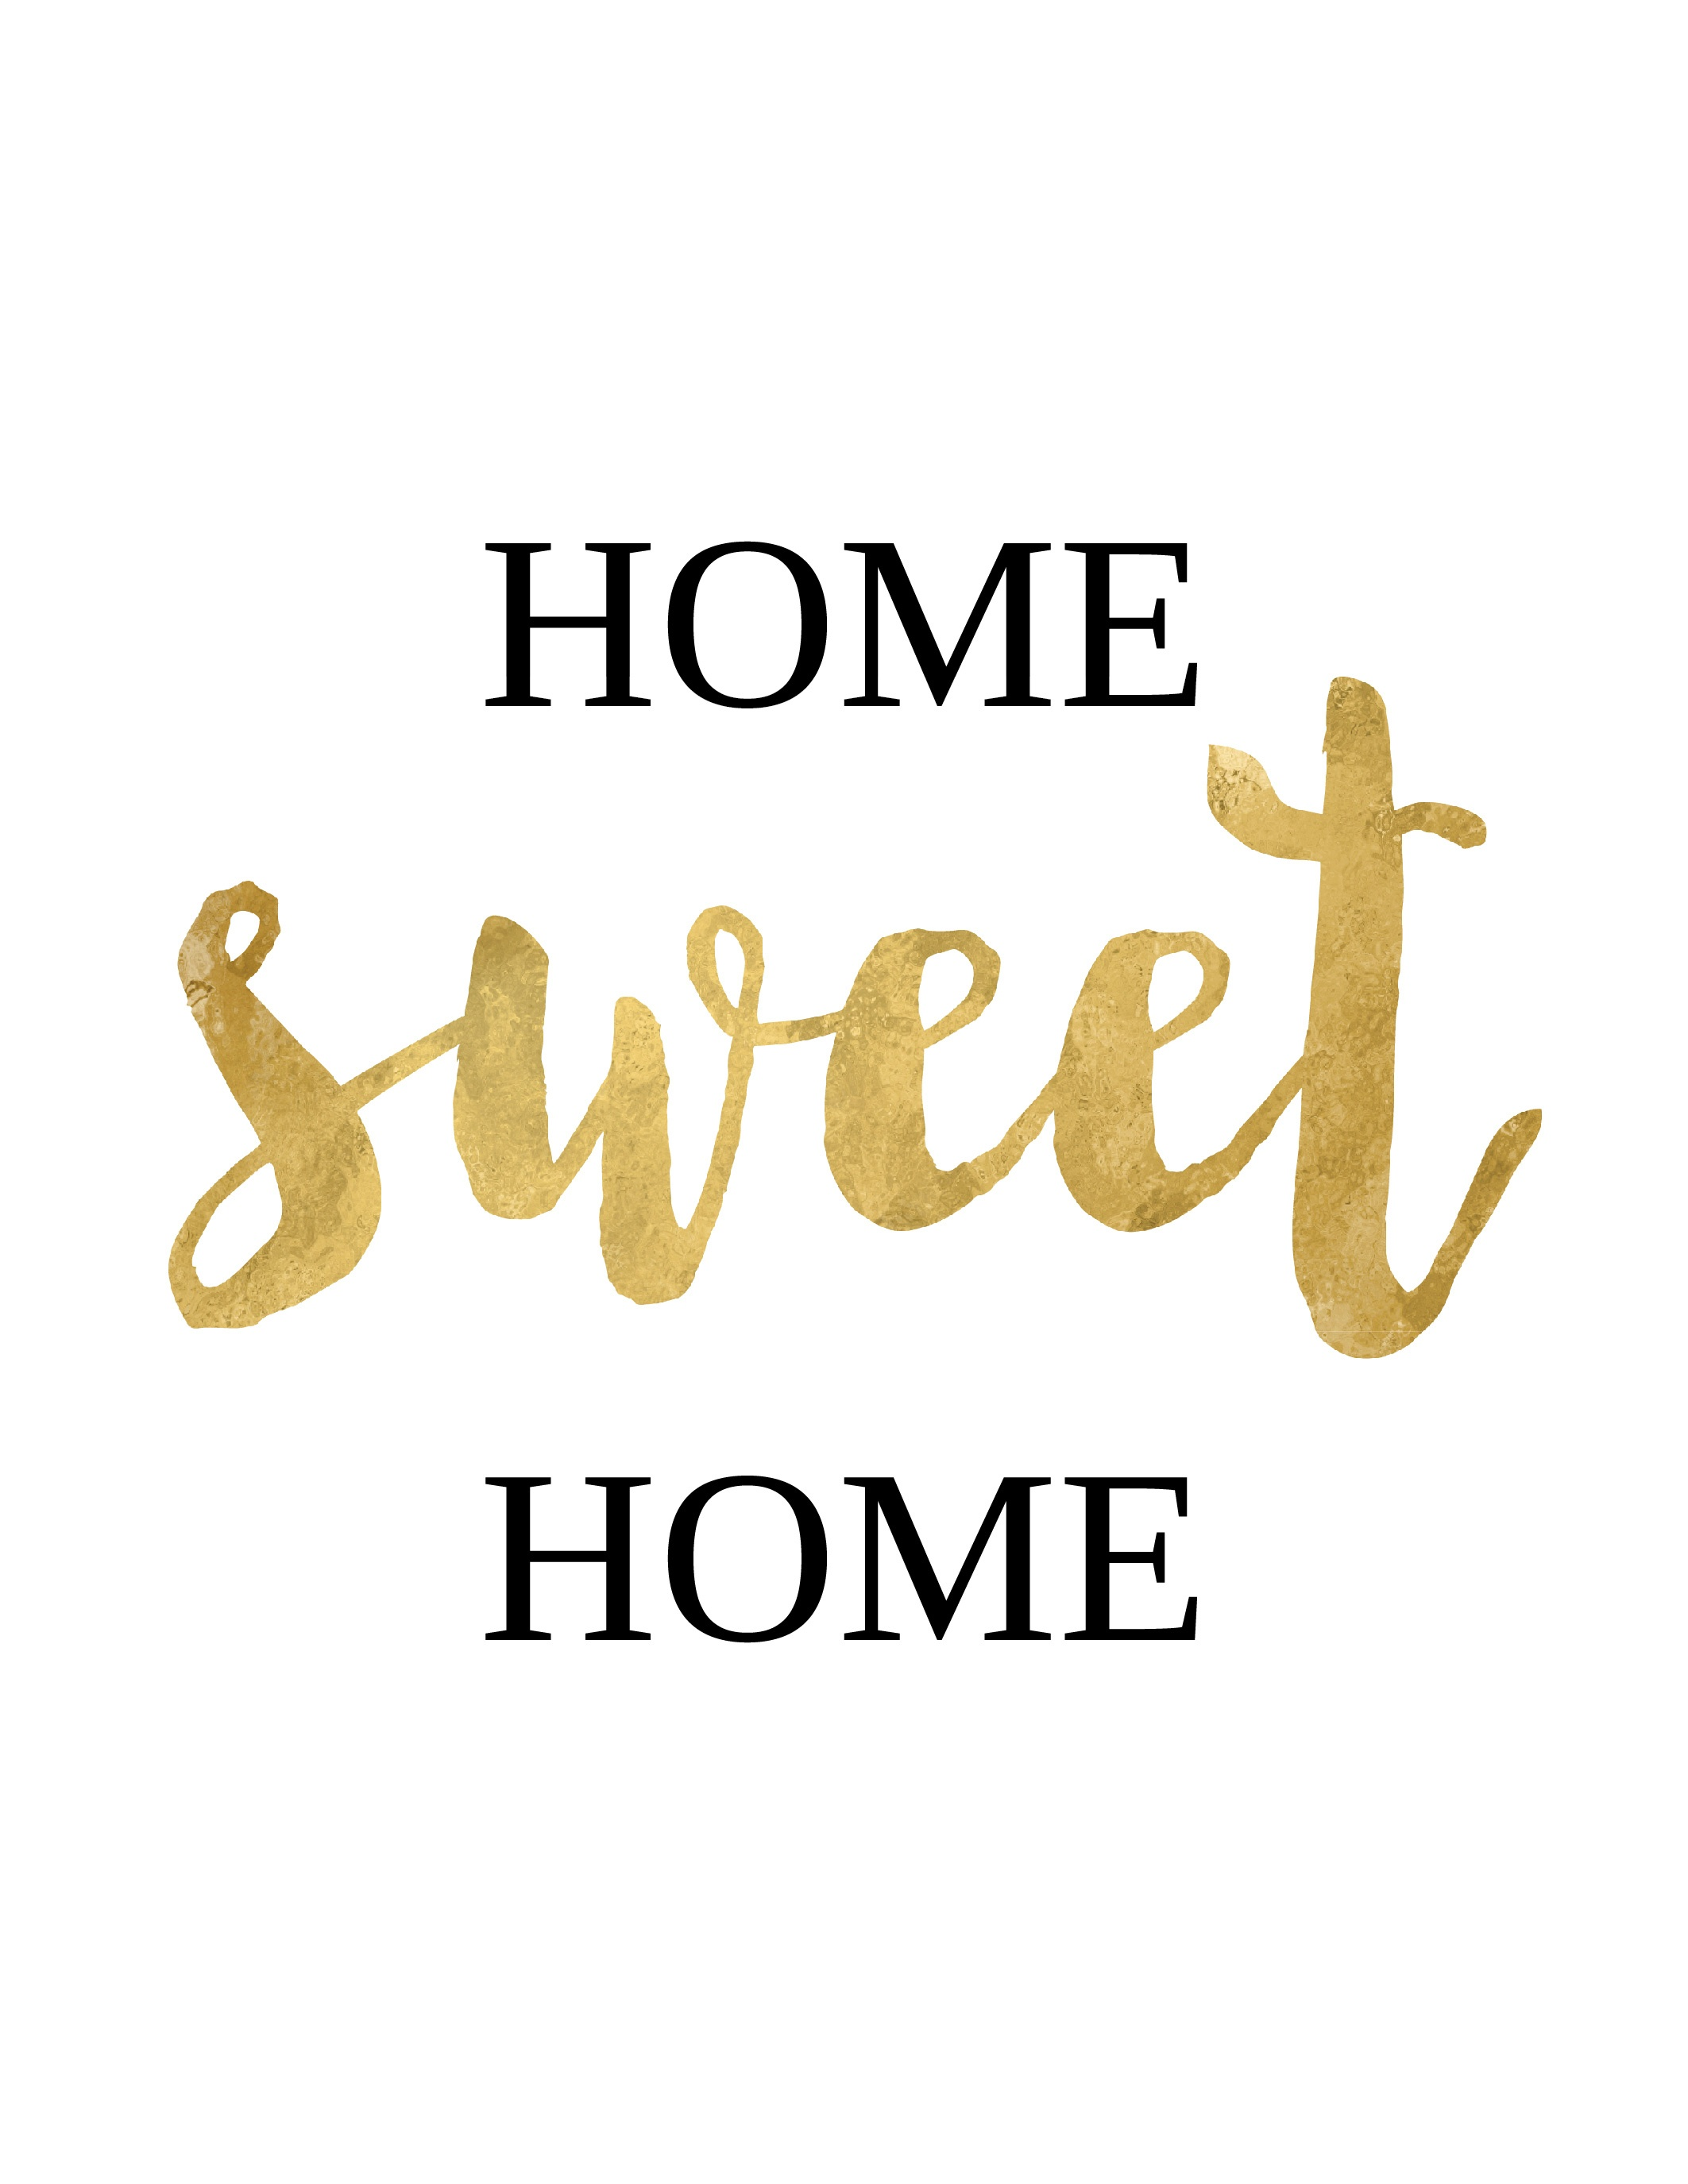 Top 15 Inspirational Quotes About Home | Personalized Moving Cards - Home Sweet Home Free Printable